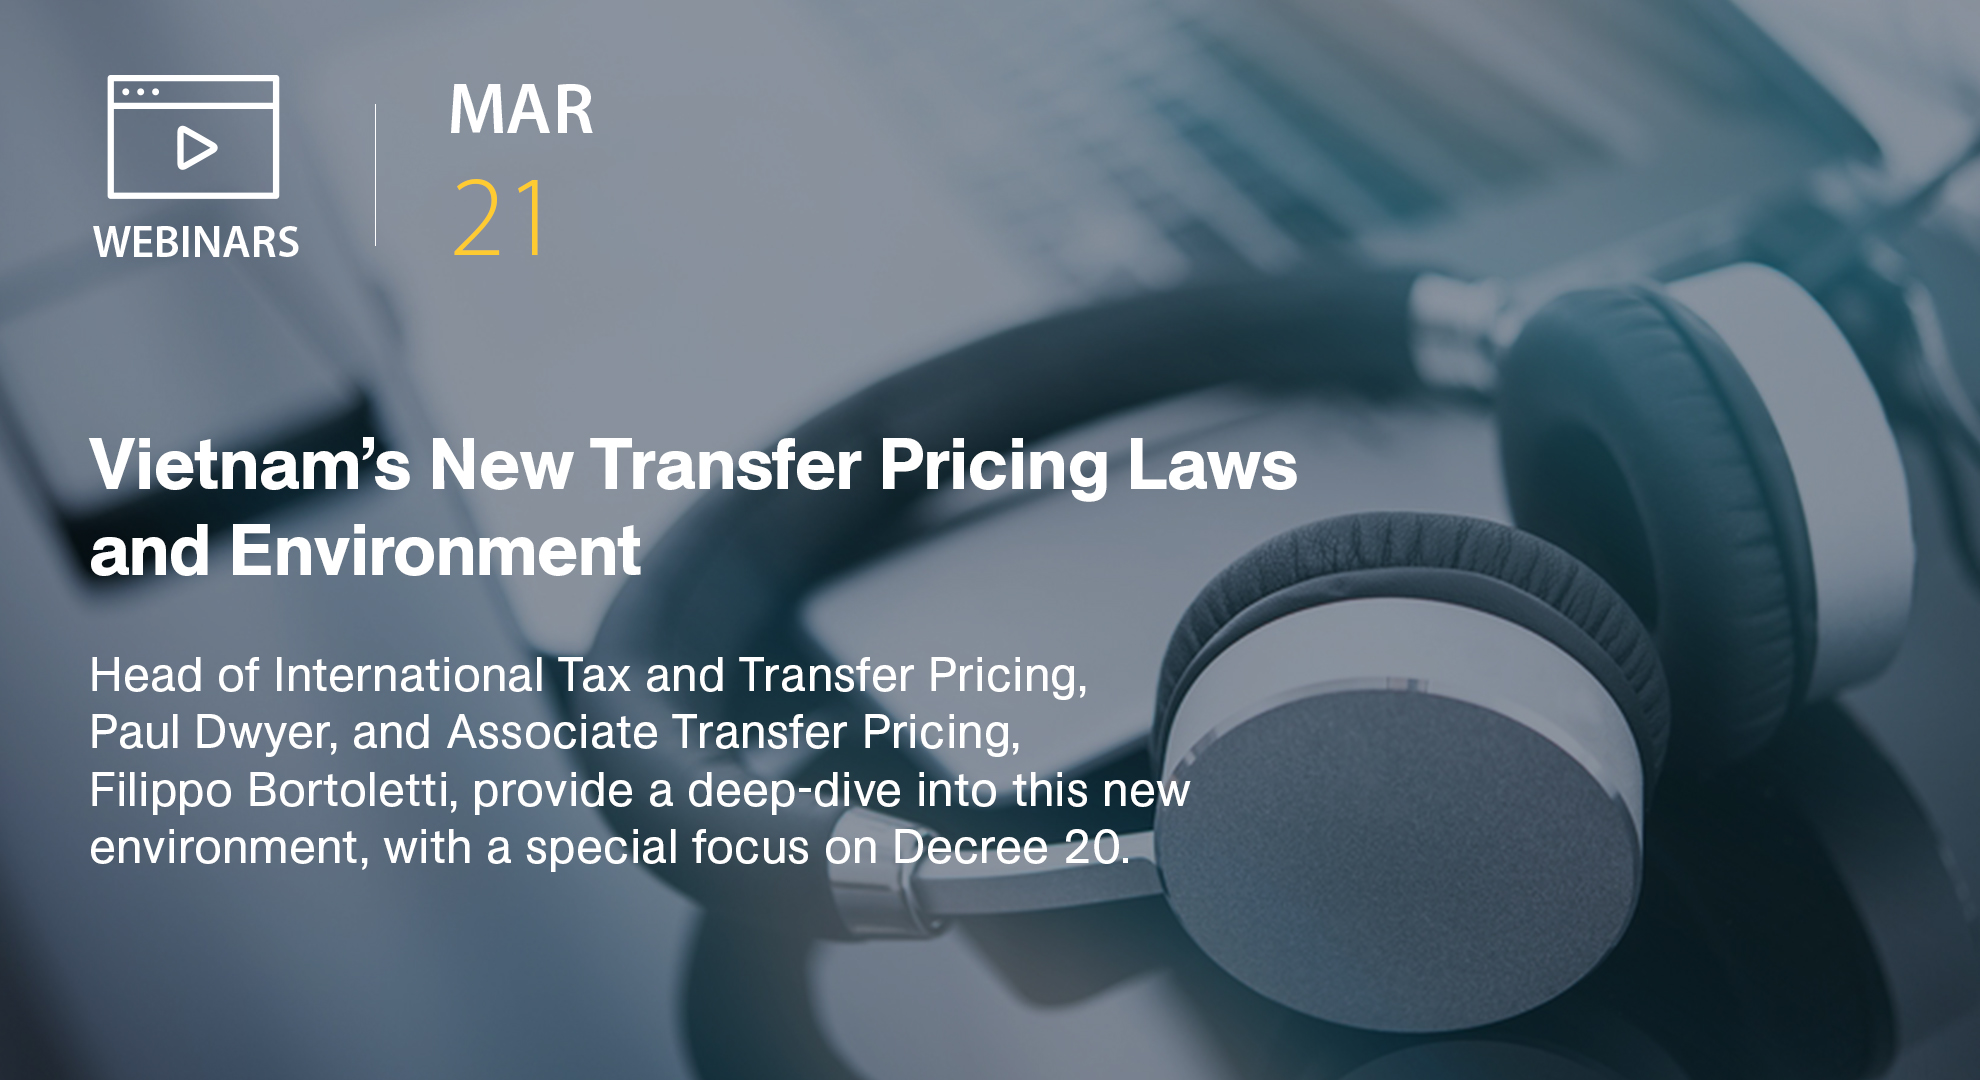 Vietnam's New Transfer Pricing Laws and Environment